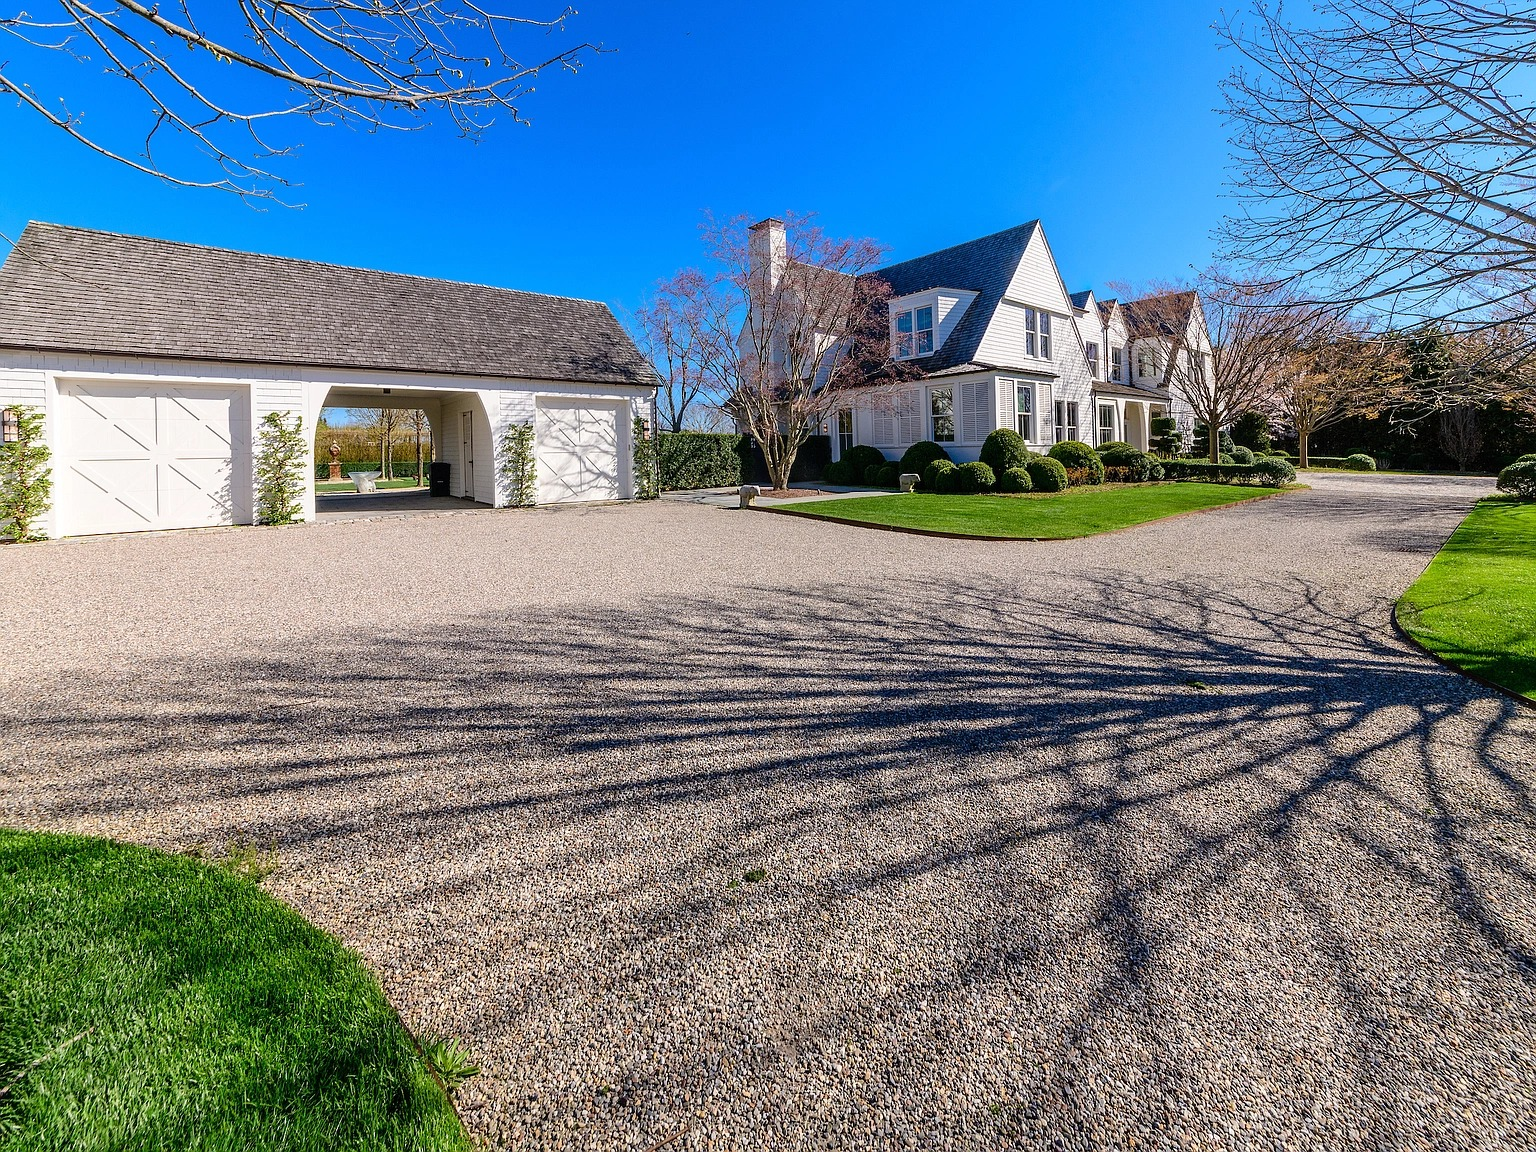 6 Calf Creek Ct, Water Mill, NY 11976 - $13,750,000 home for sale, house images, photos and pics gallery